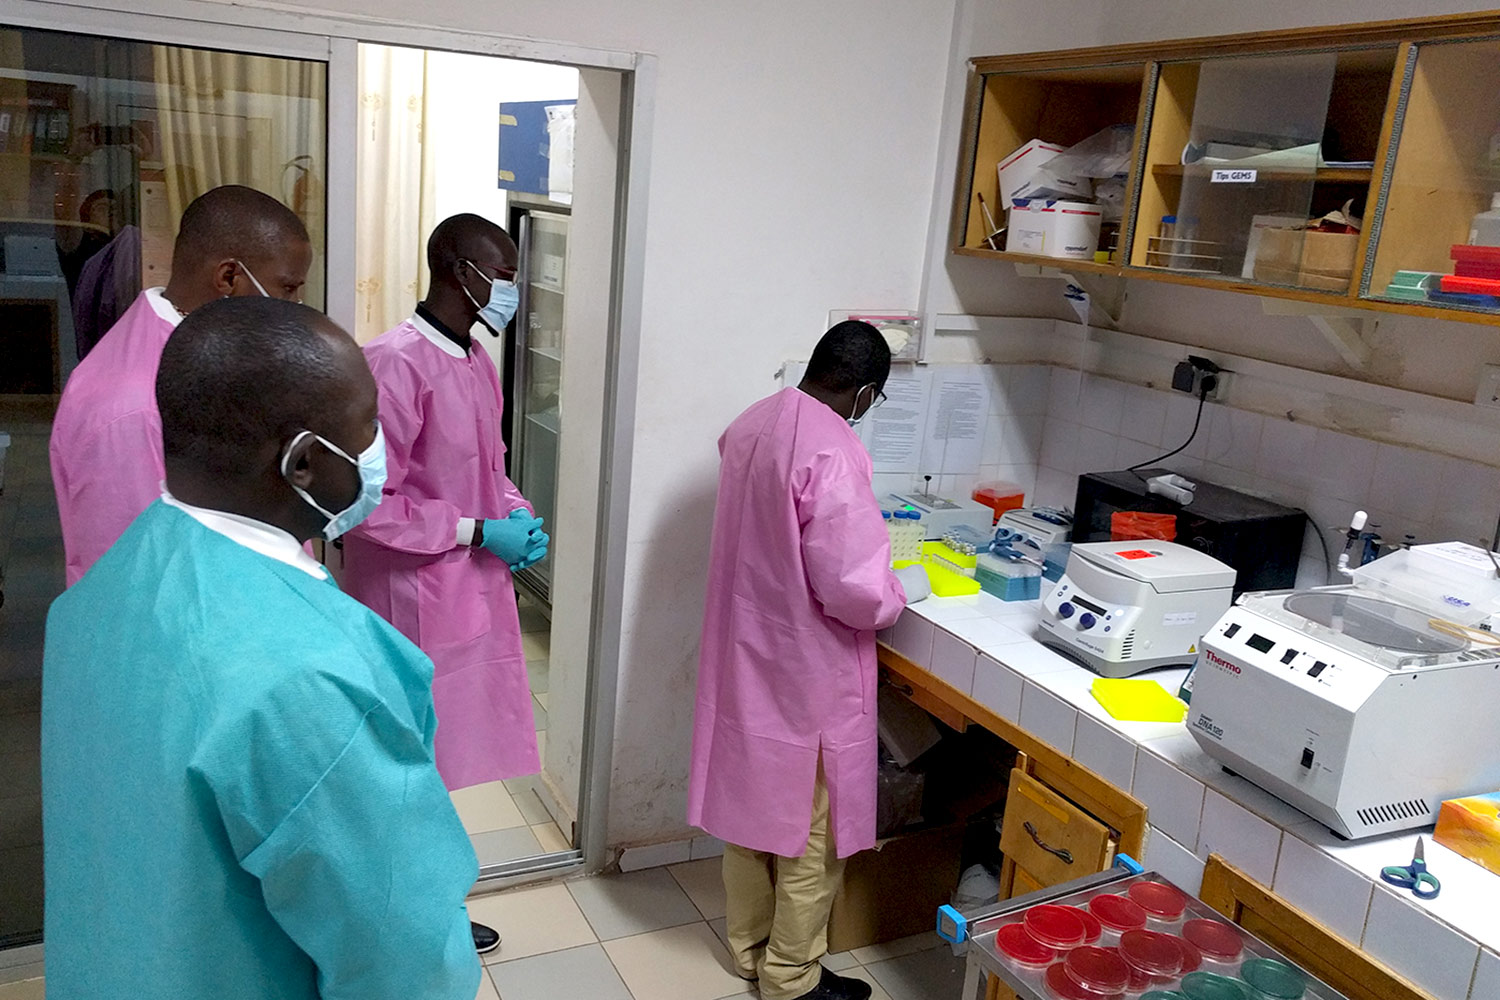 Researchers in Mali analyze samples as part of the study.